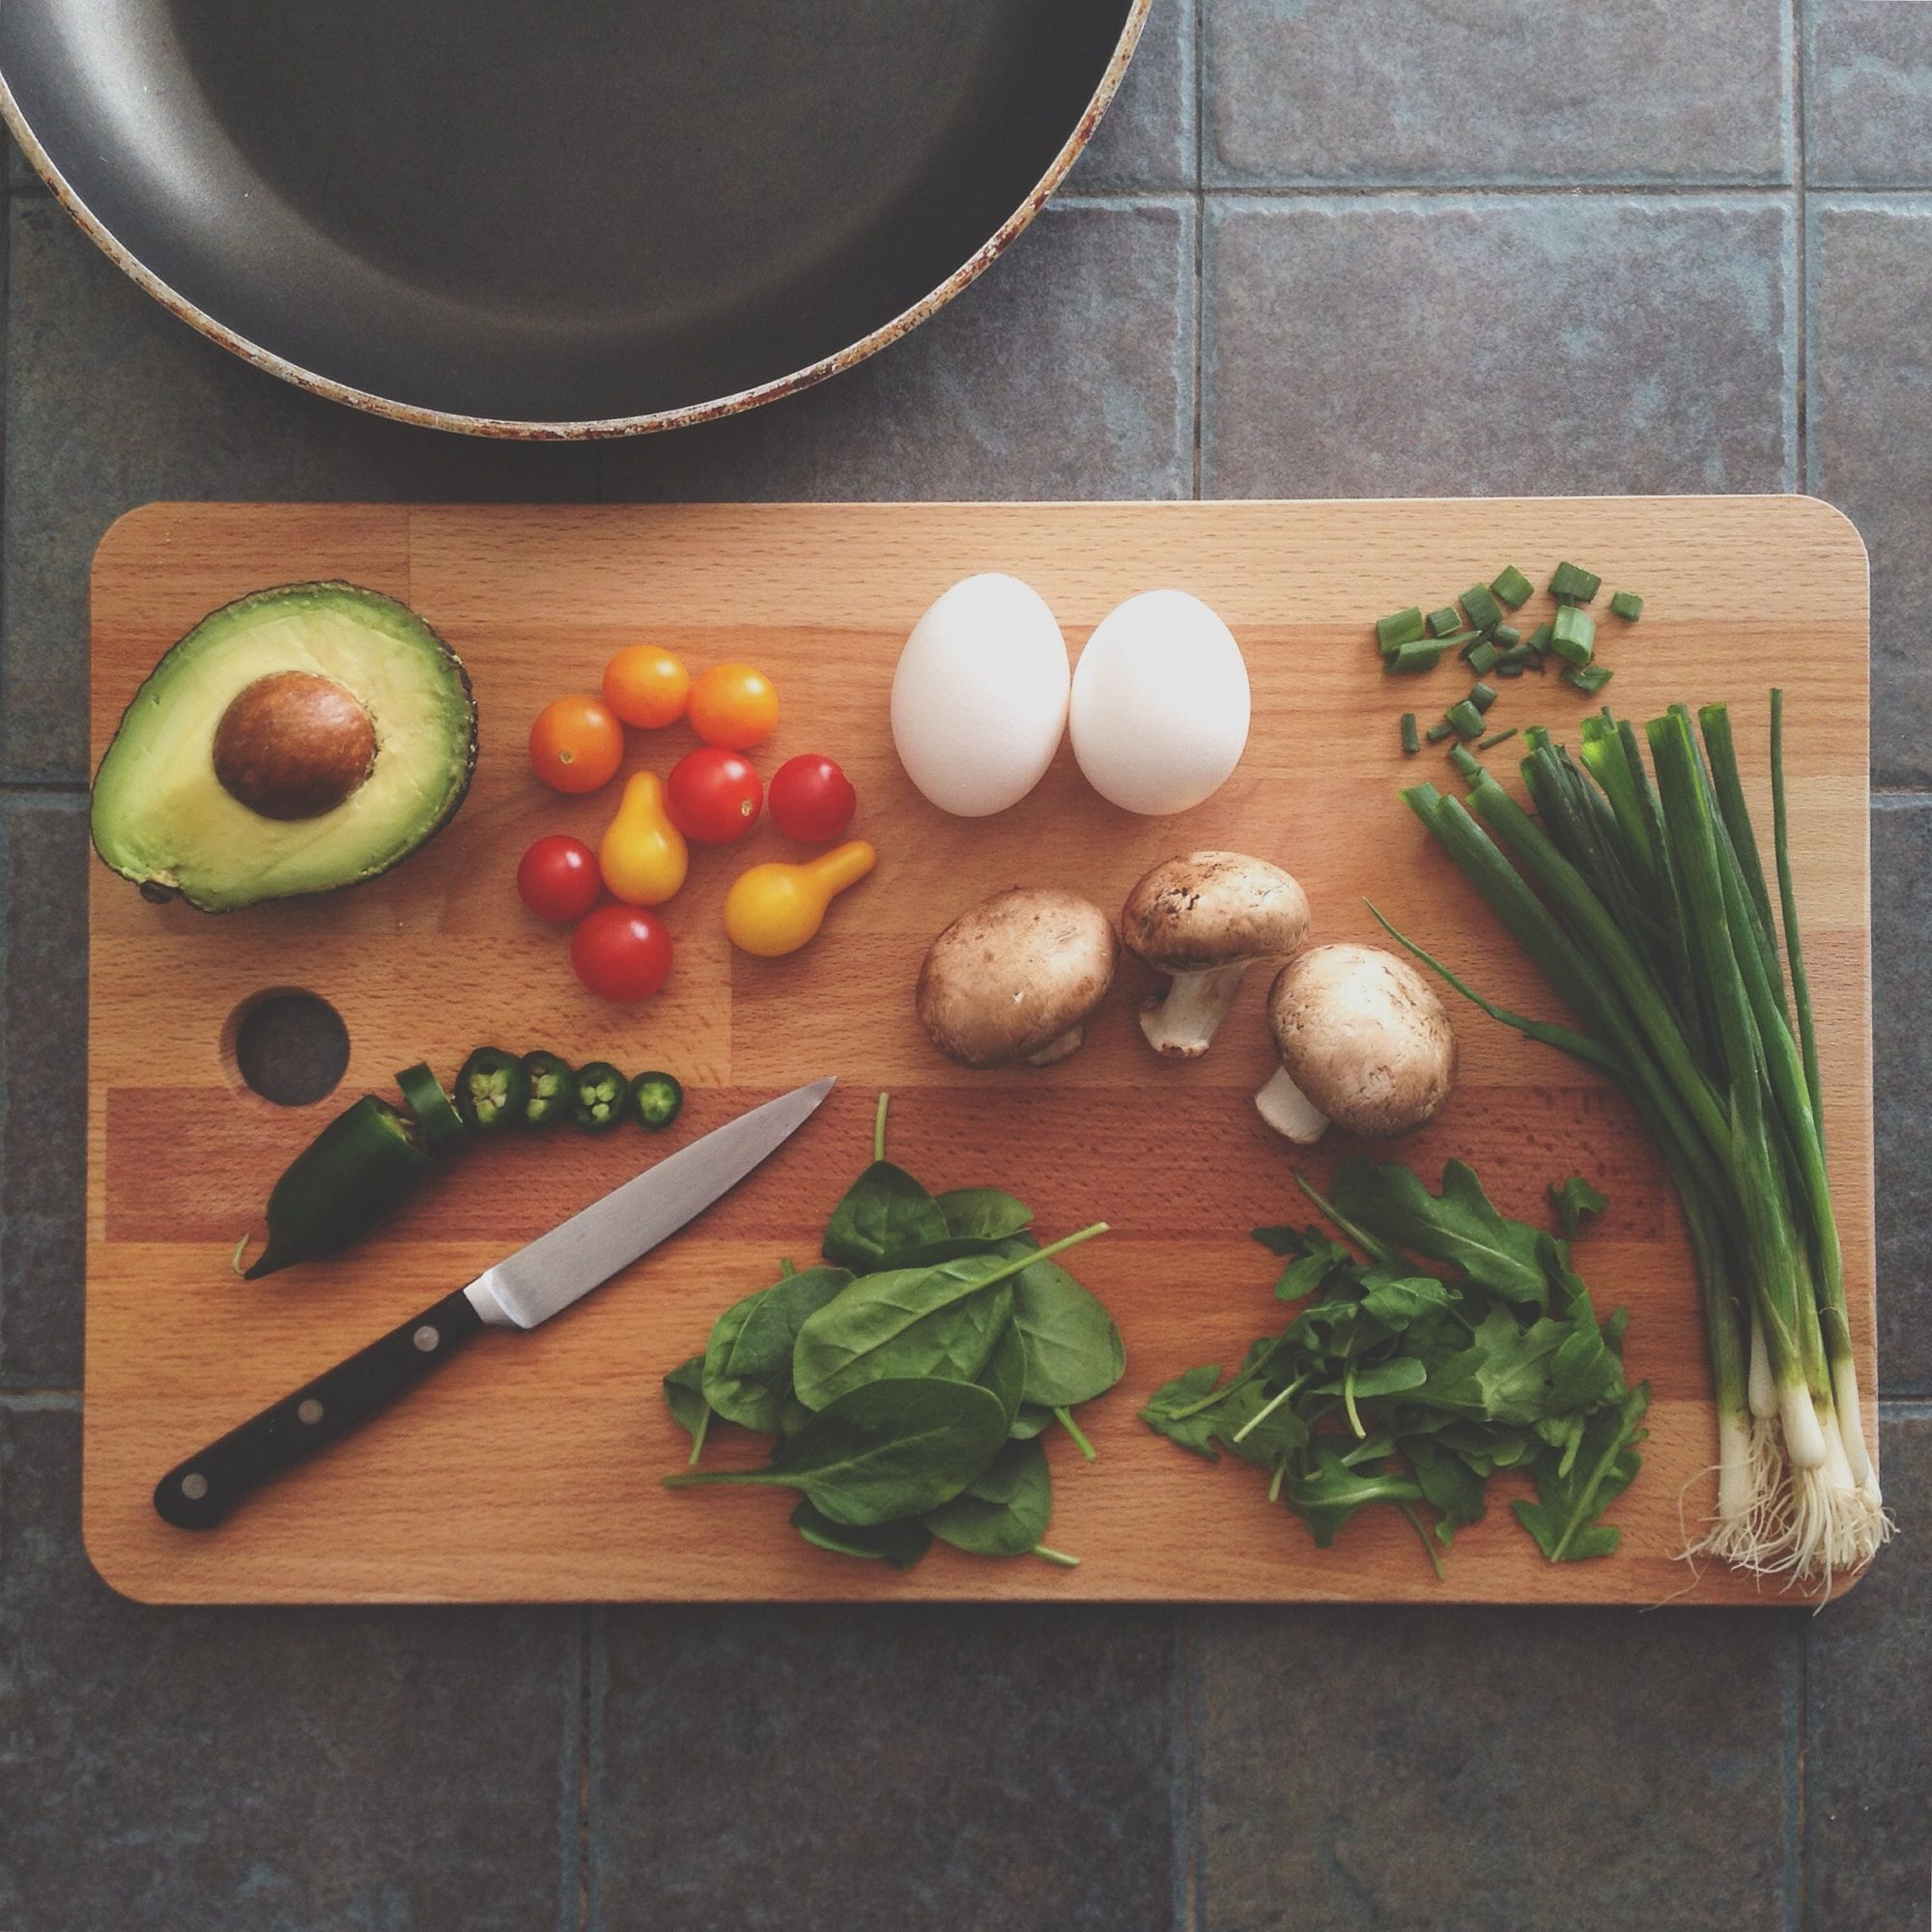 Flatlay image of various meal ingredients on a chopping board. A frying pan is nearby.